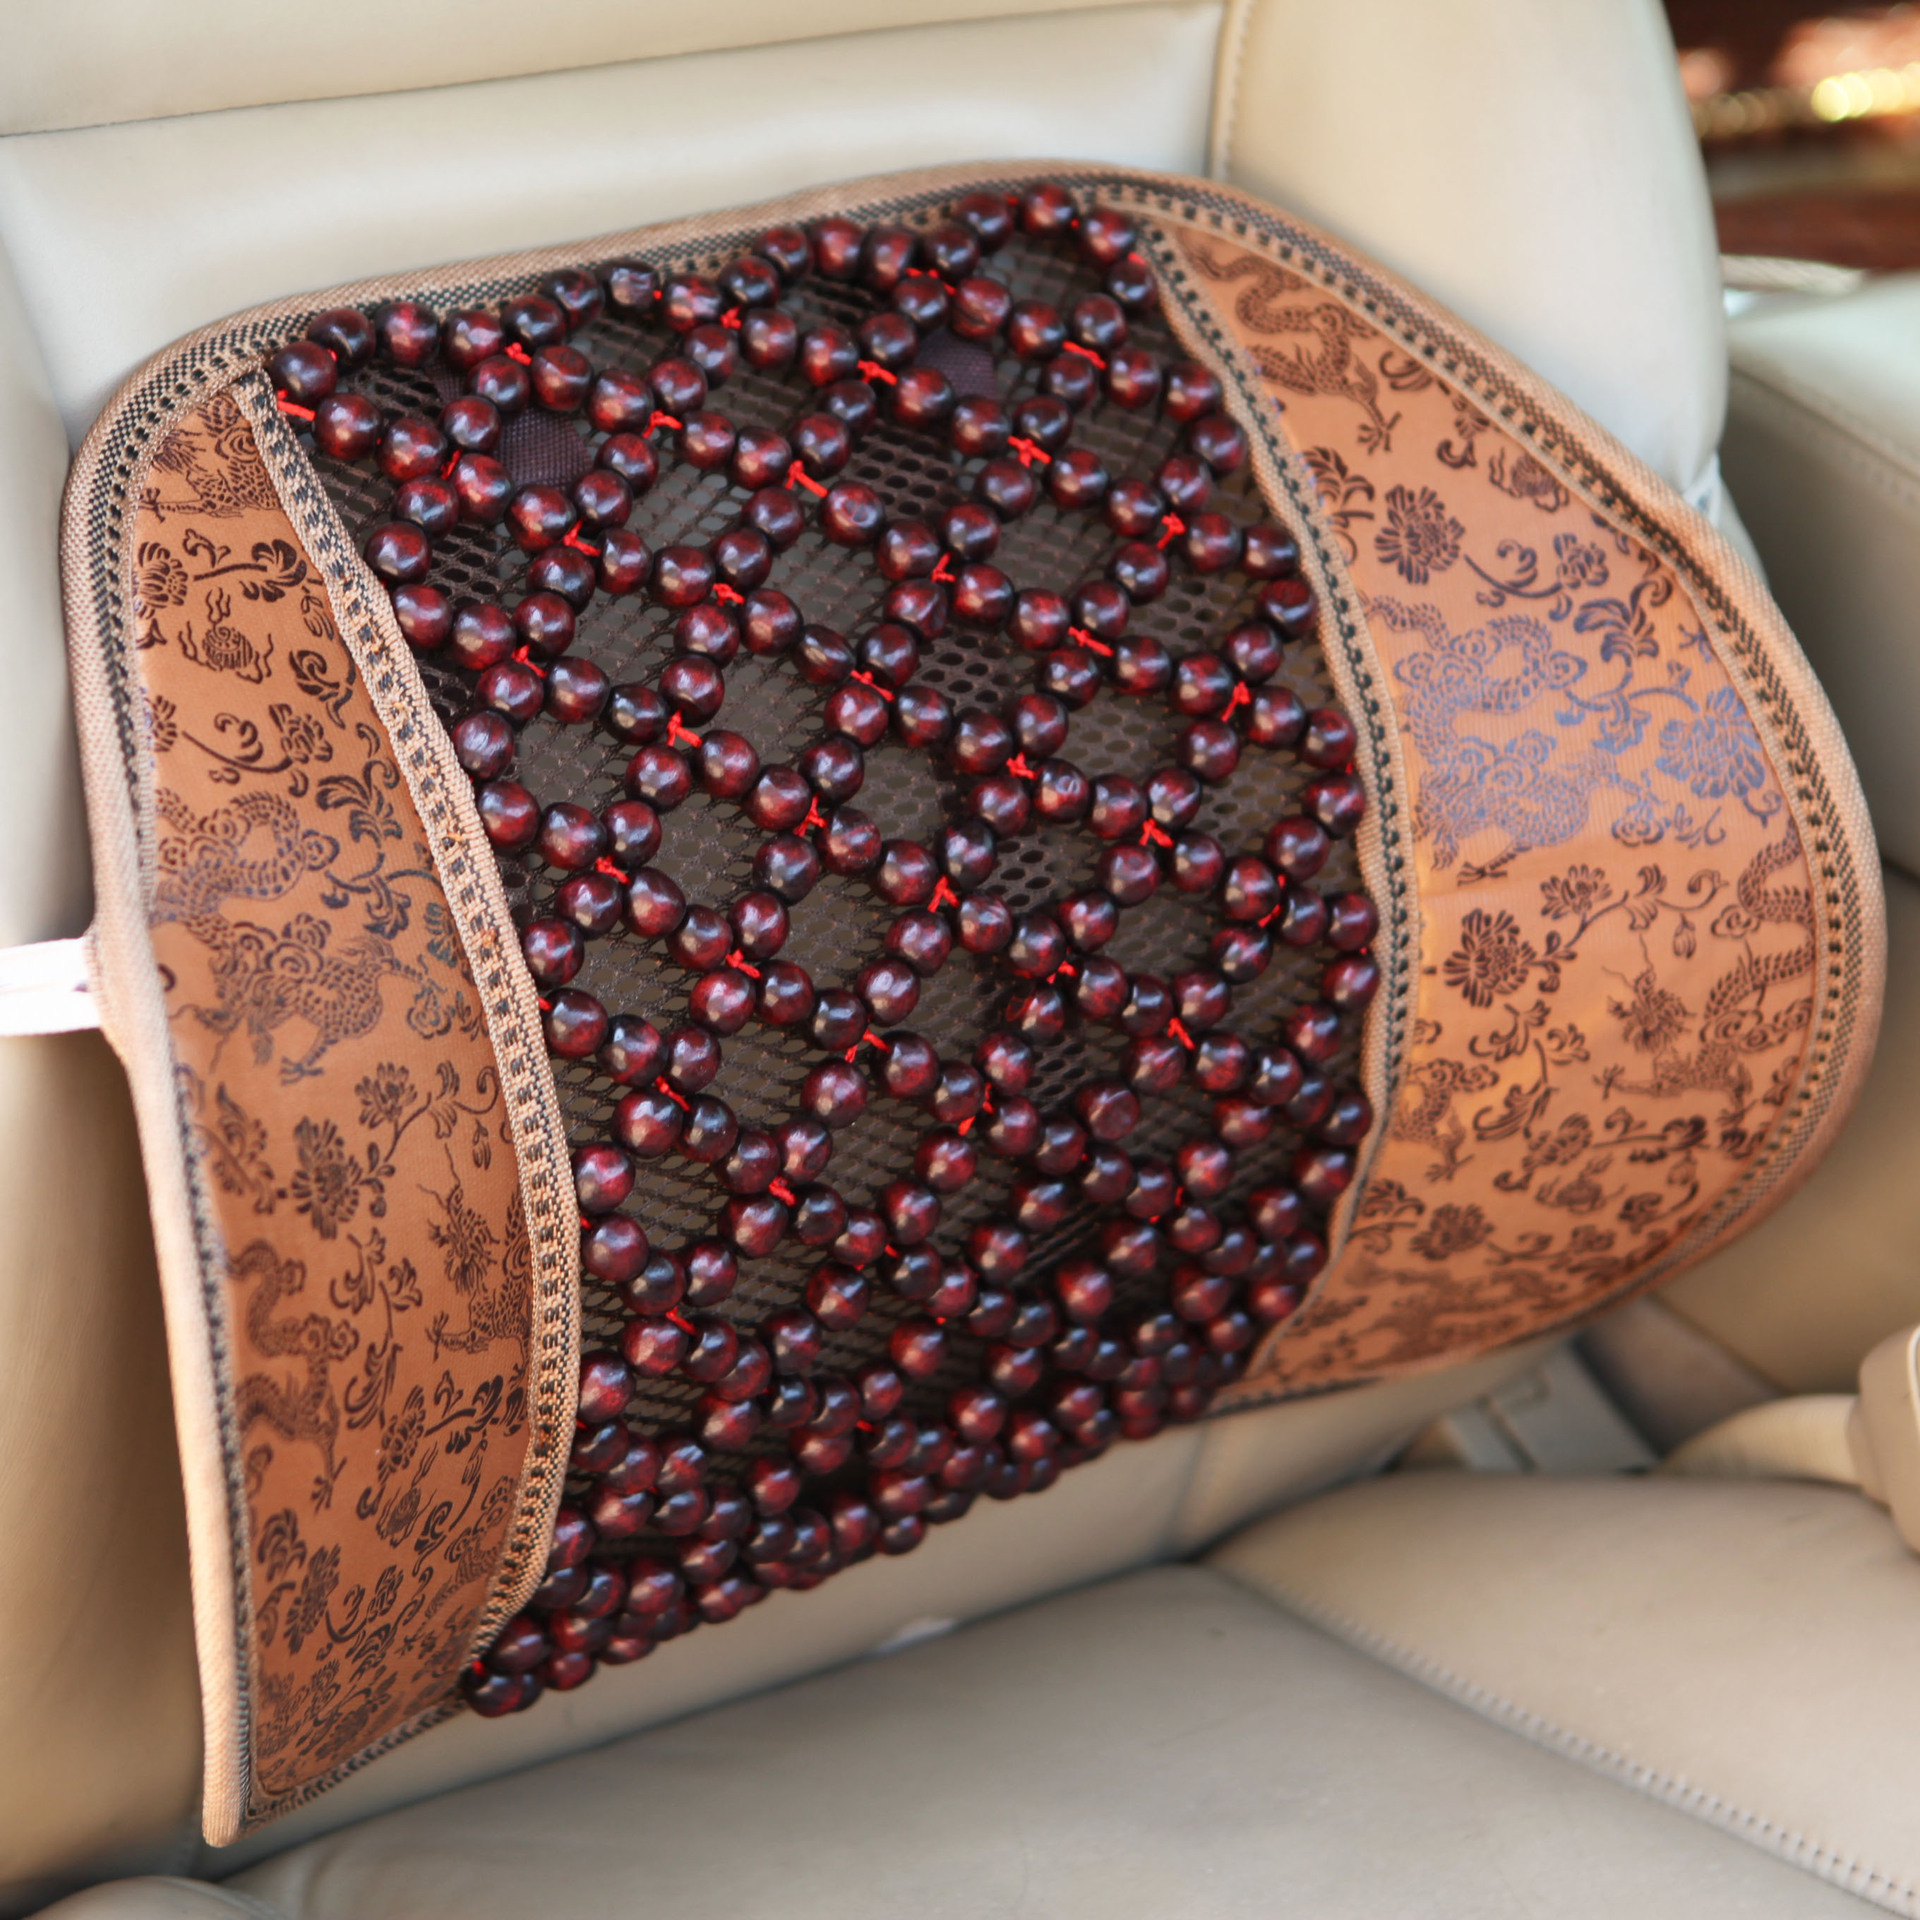 office chair accessories for back pain bernina sewing sale top quality wood beads relief lumbar